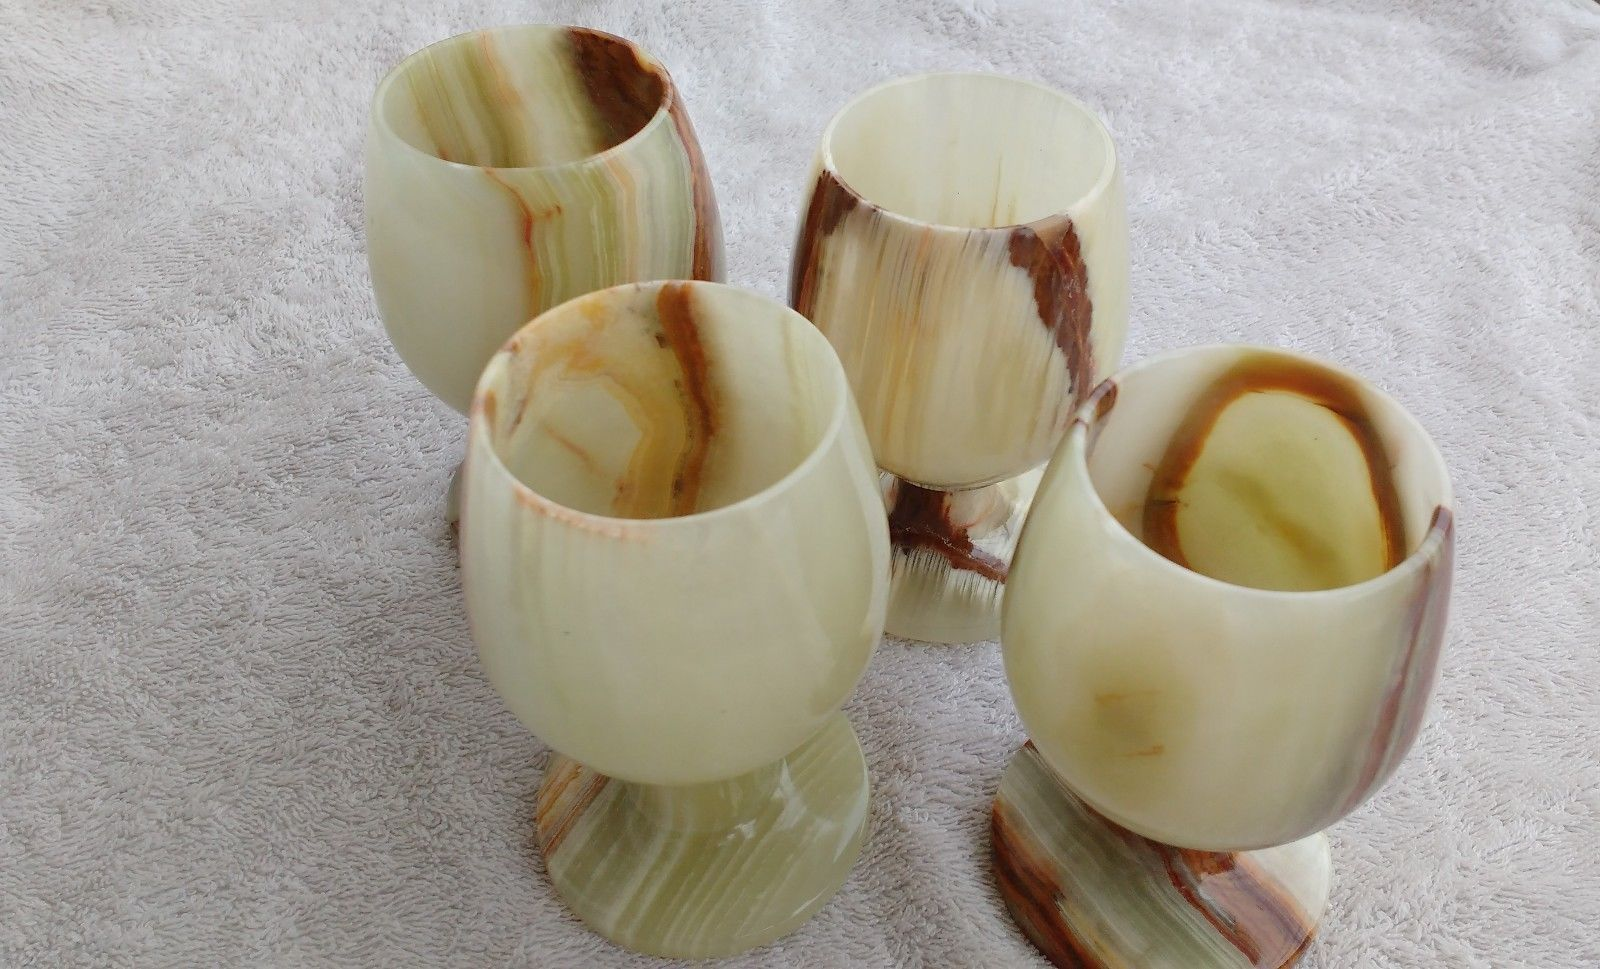 Onyx-Marble-Stone-Wine-Cup-Glass-Shots-4-Pc-Set-4-INCH-GOBLETS-GIFT